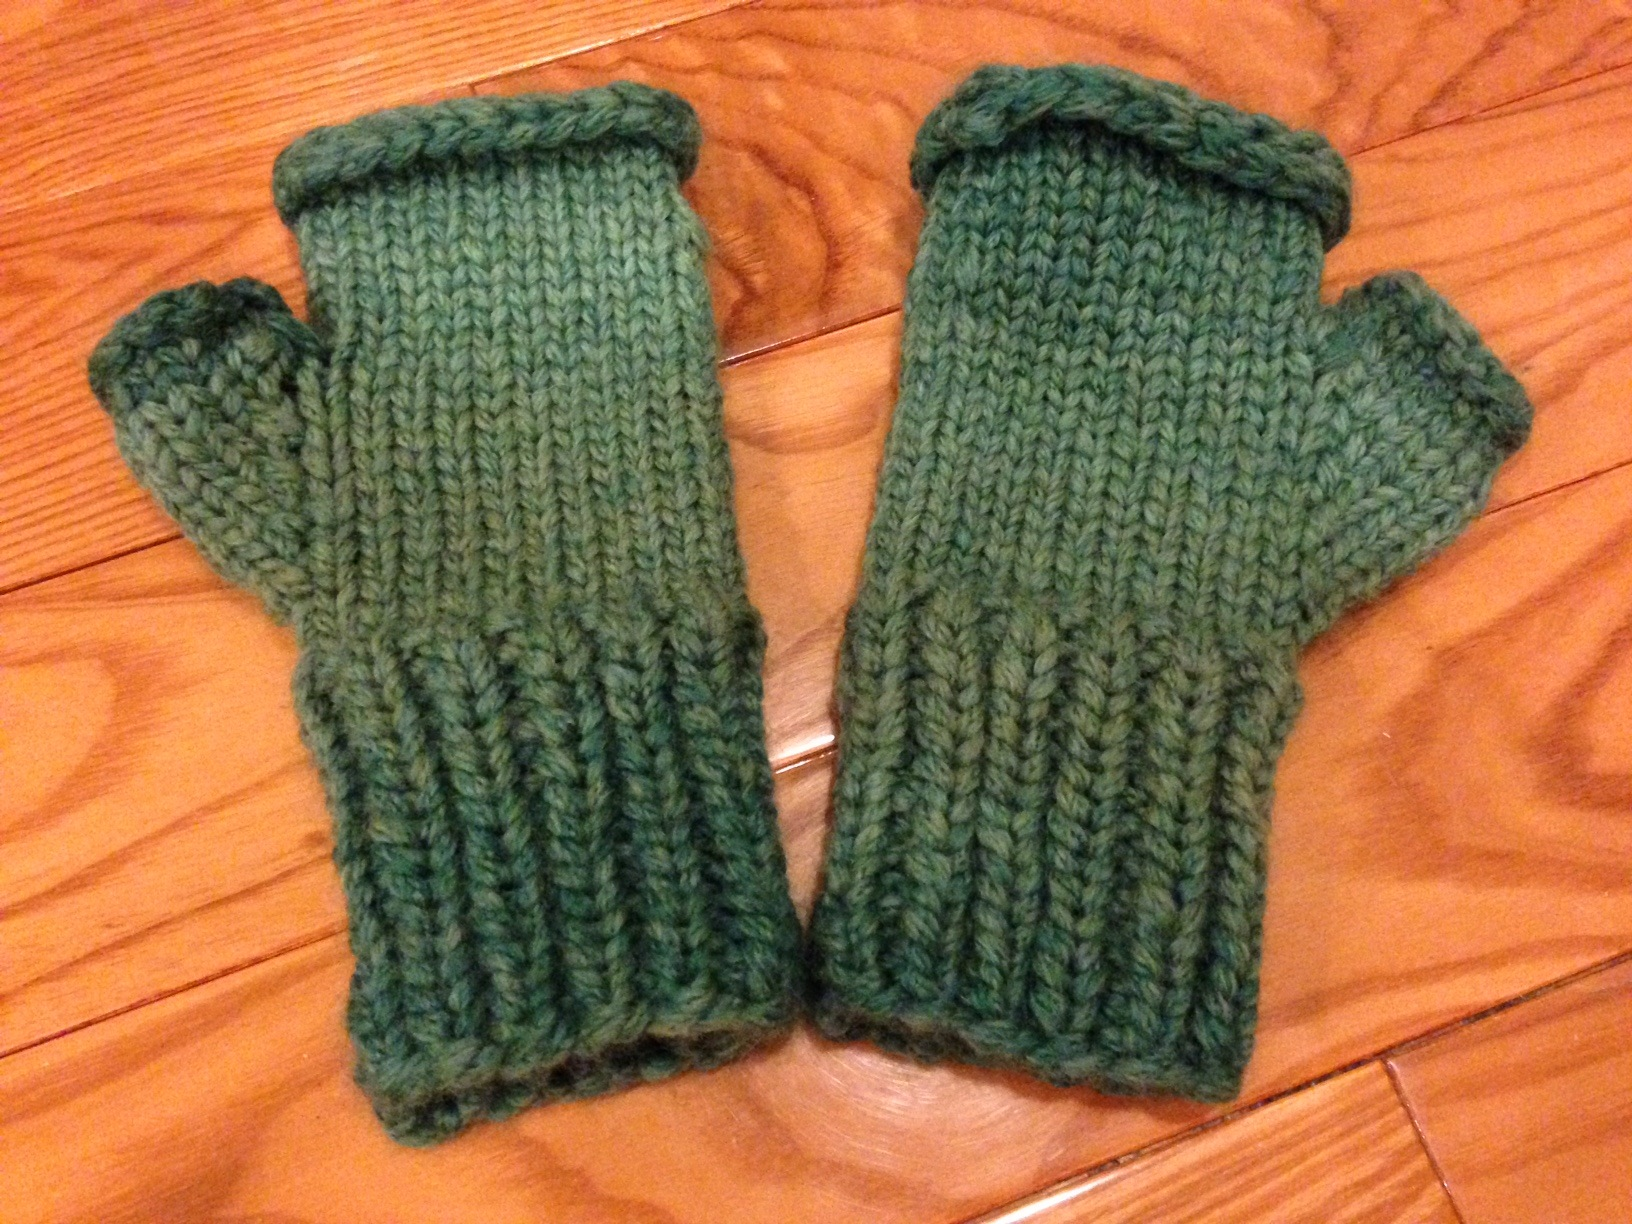 Knitting Mittens With Magic Loop : Magic loop mittens knit without fear maura elizabeth